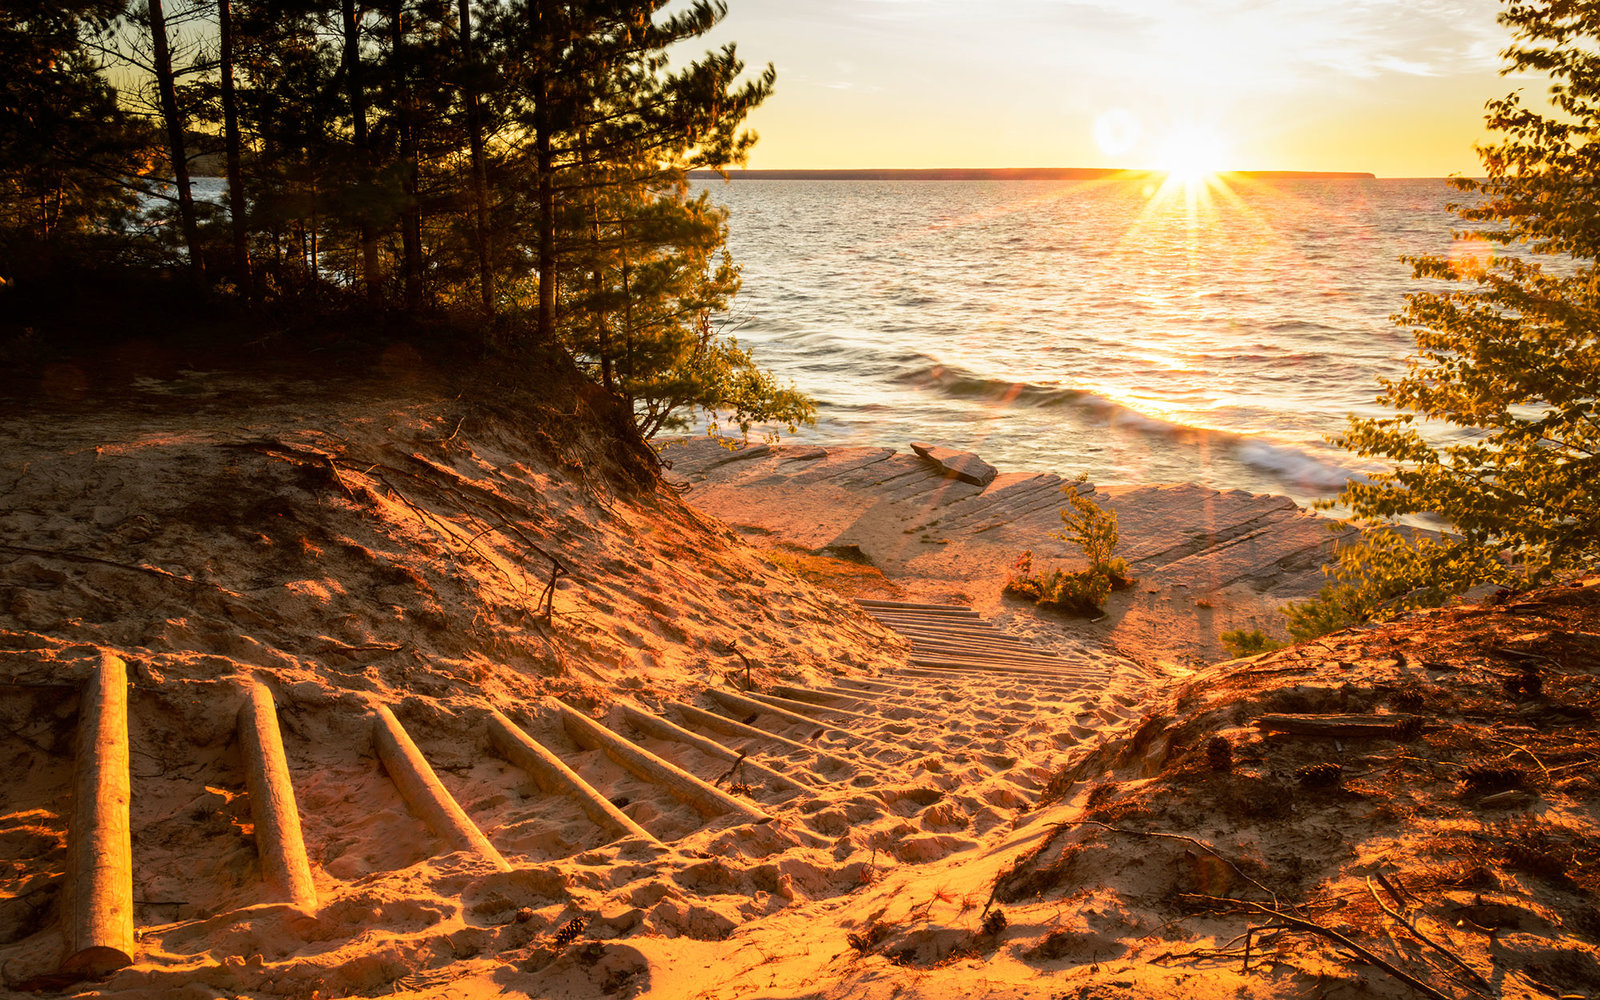 Stairway of logs going down to Lake Superior, into the bright sunshine.